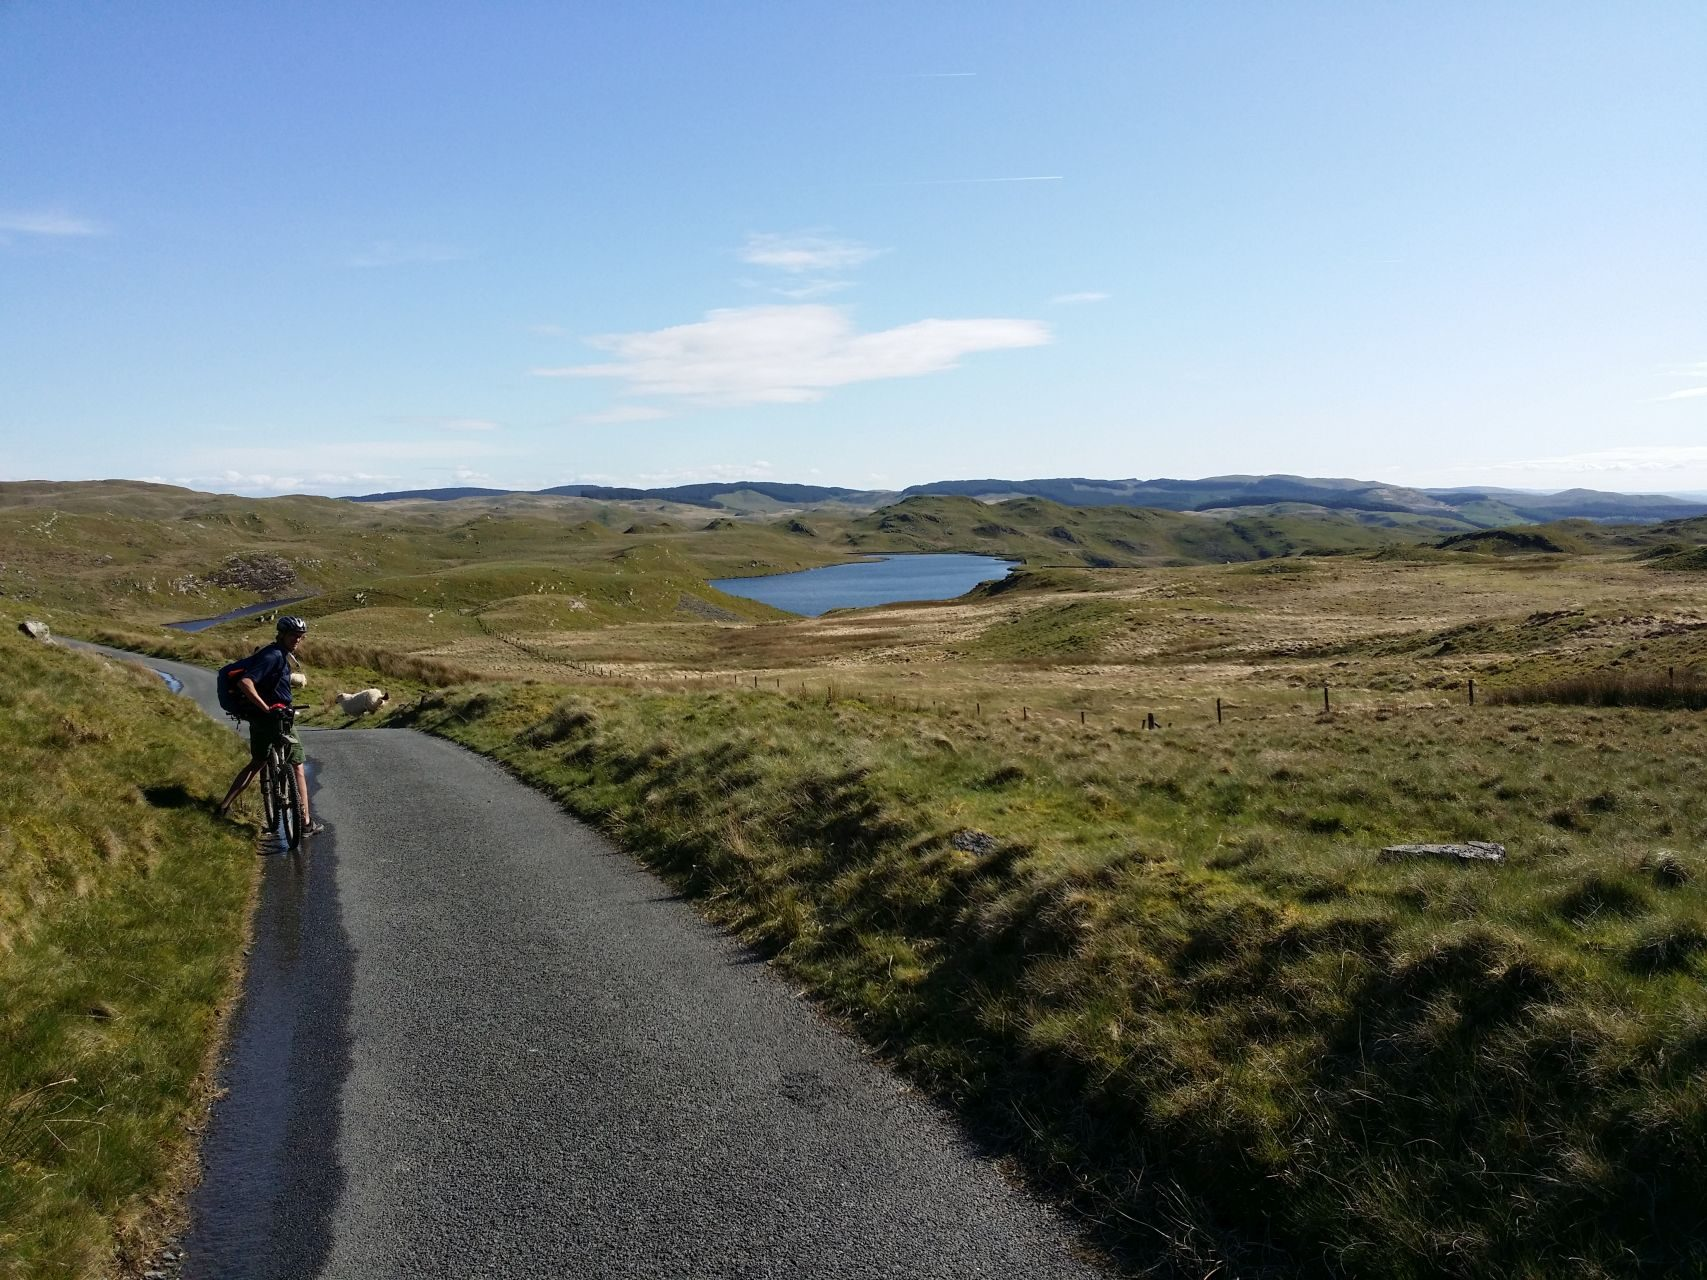 Day 5 - Open moorland between Coed Bwylchgwallter woodland and Elan Valley